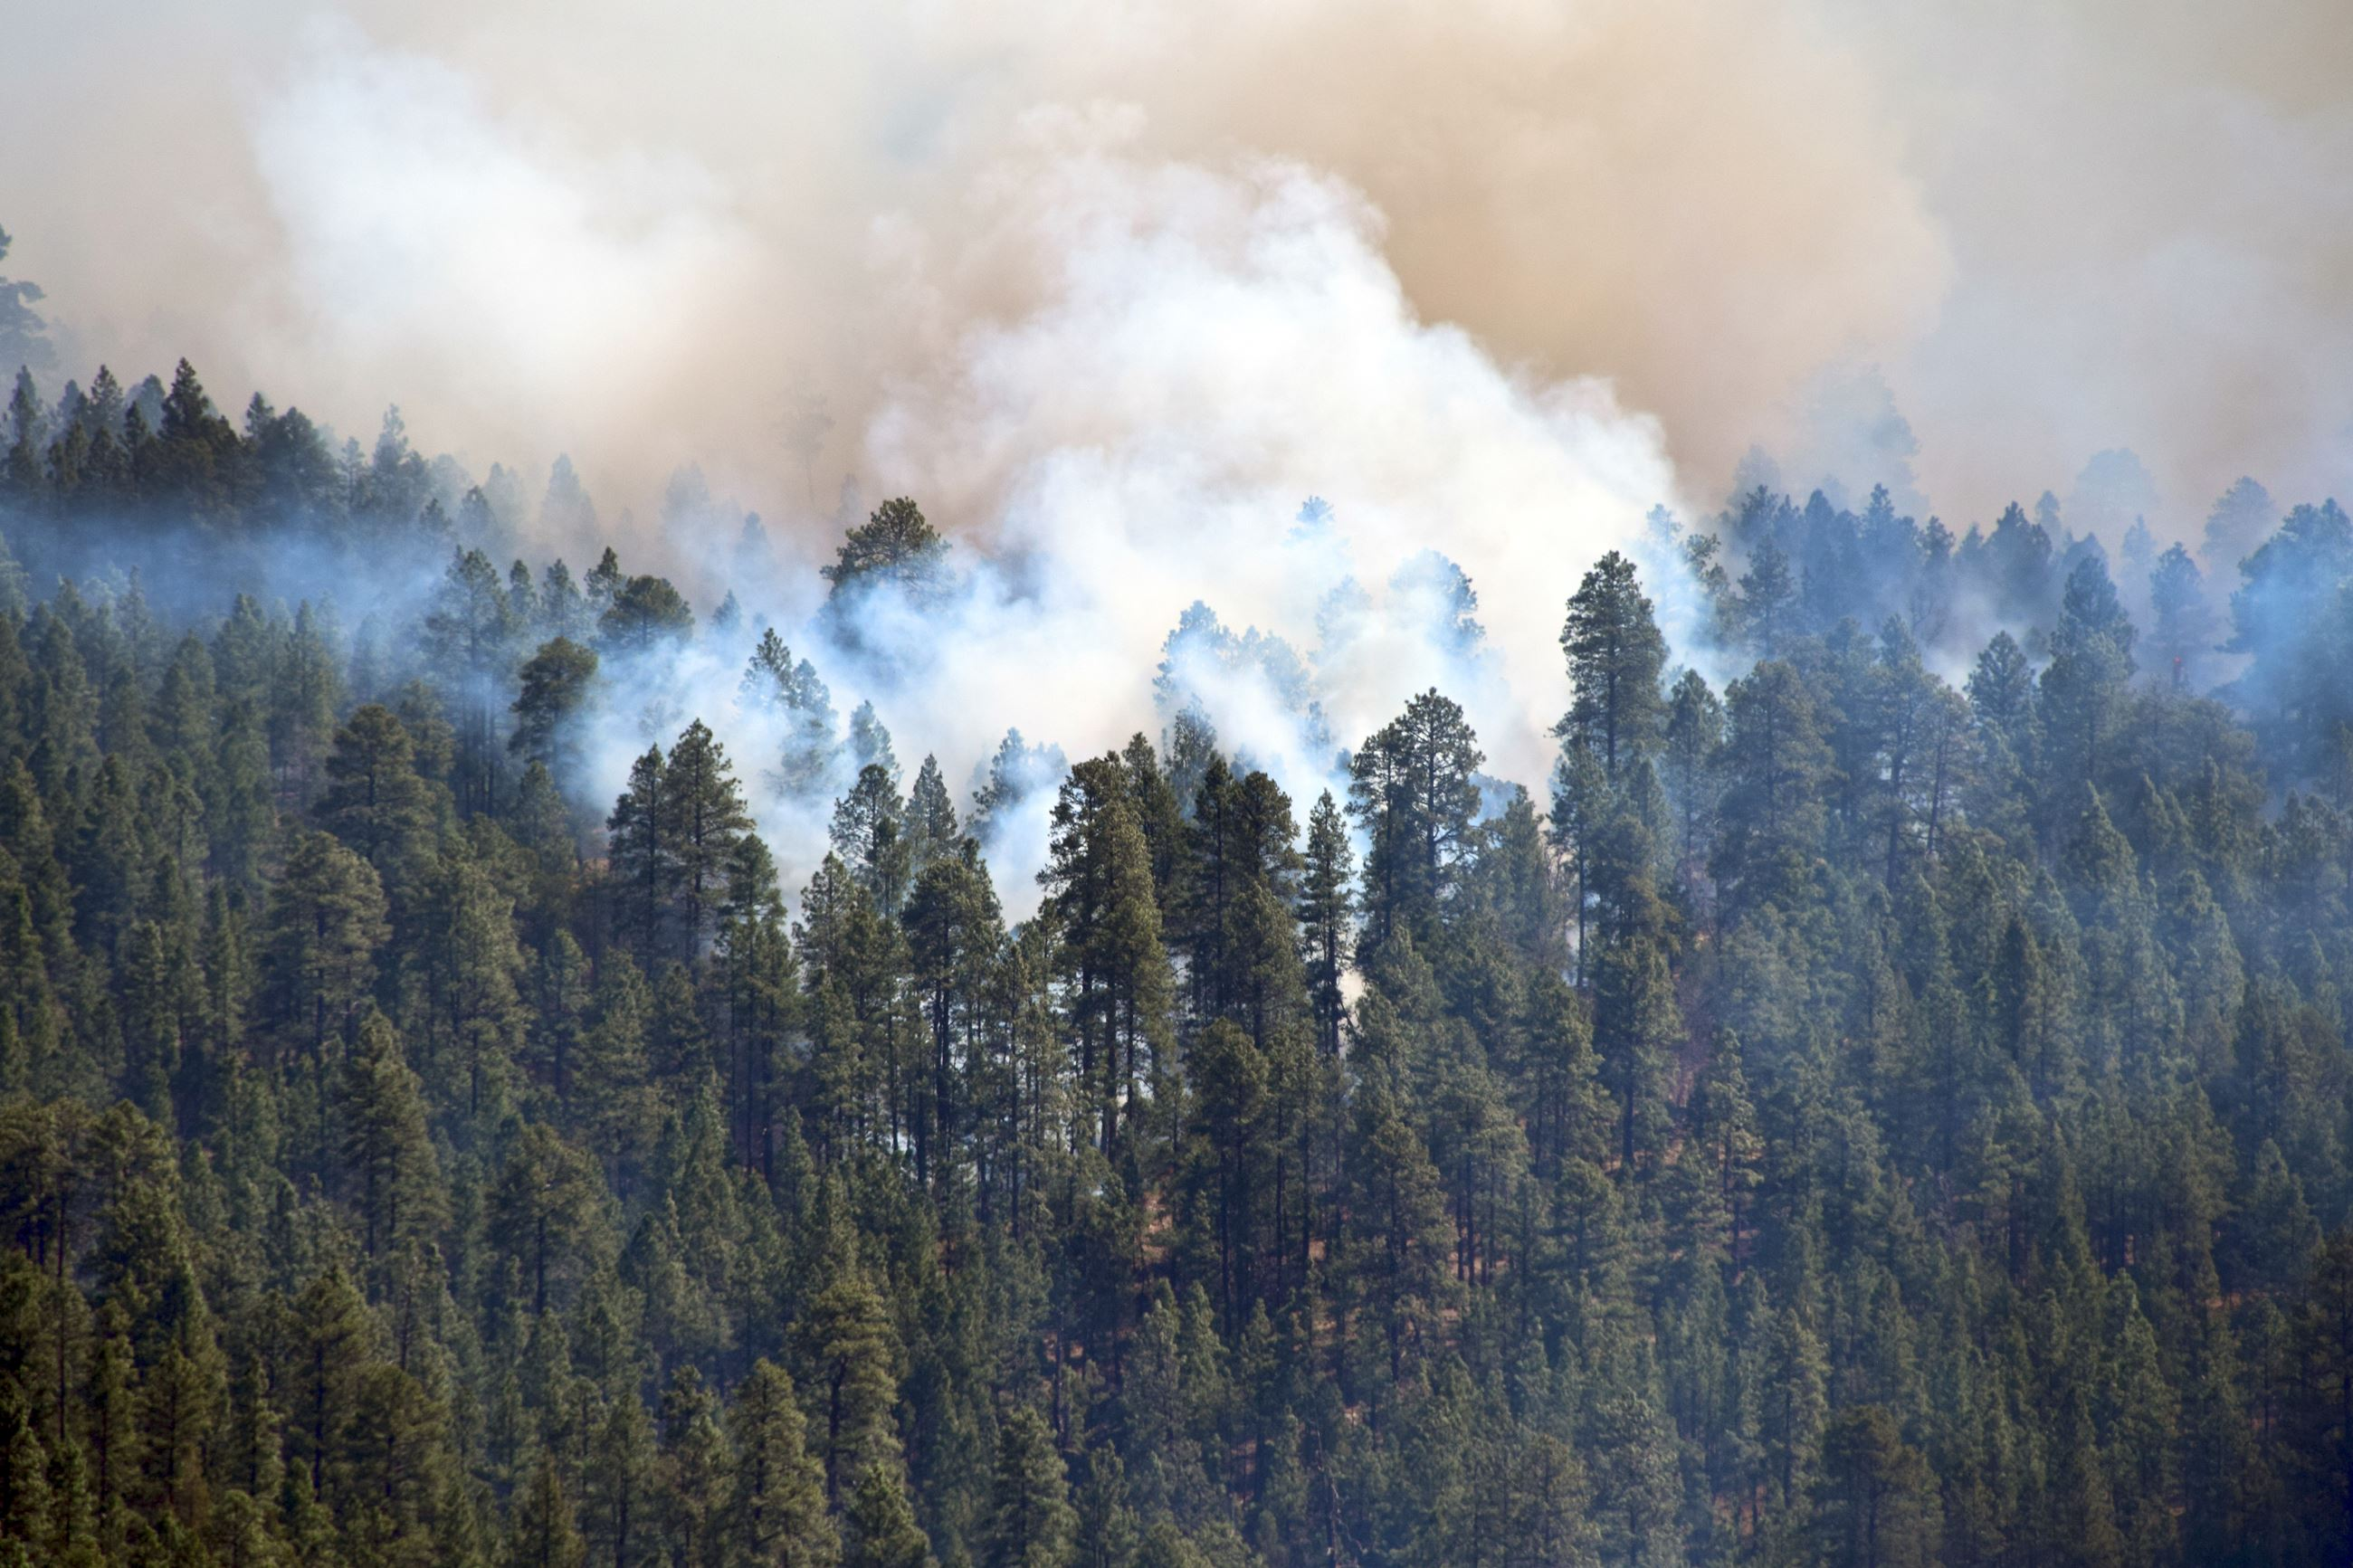 Tinder Fire Coconino NF Public Domain (4)